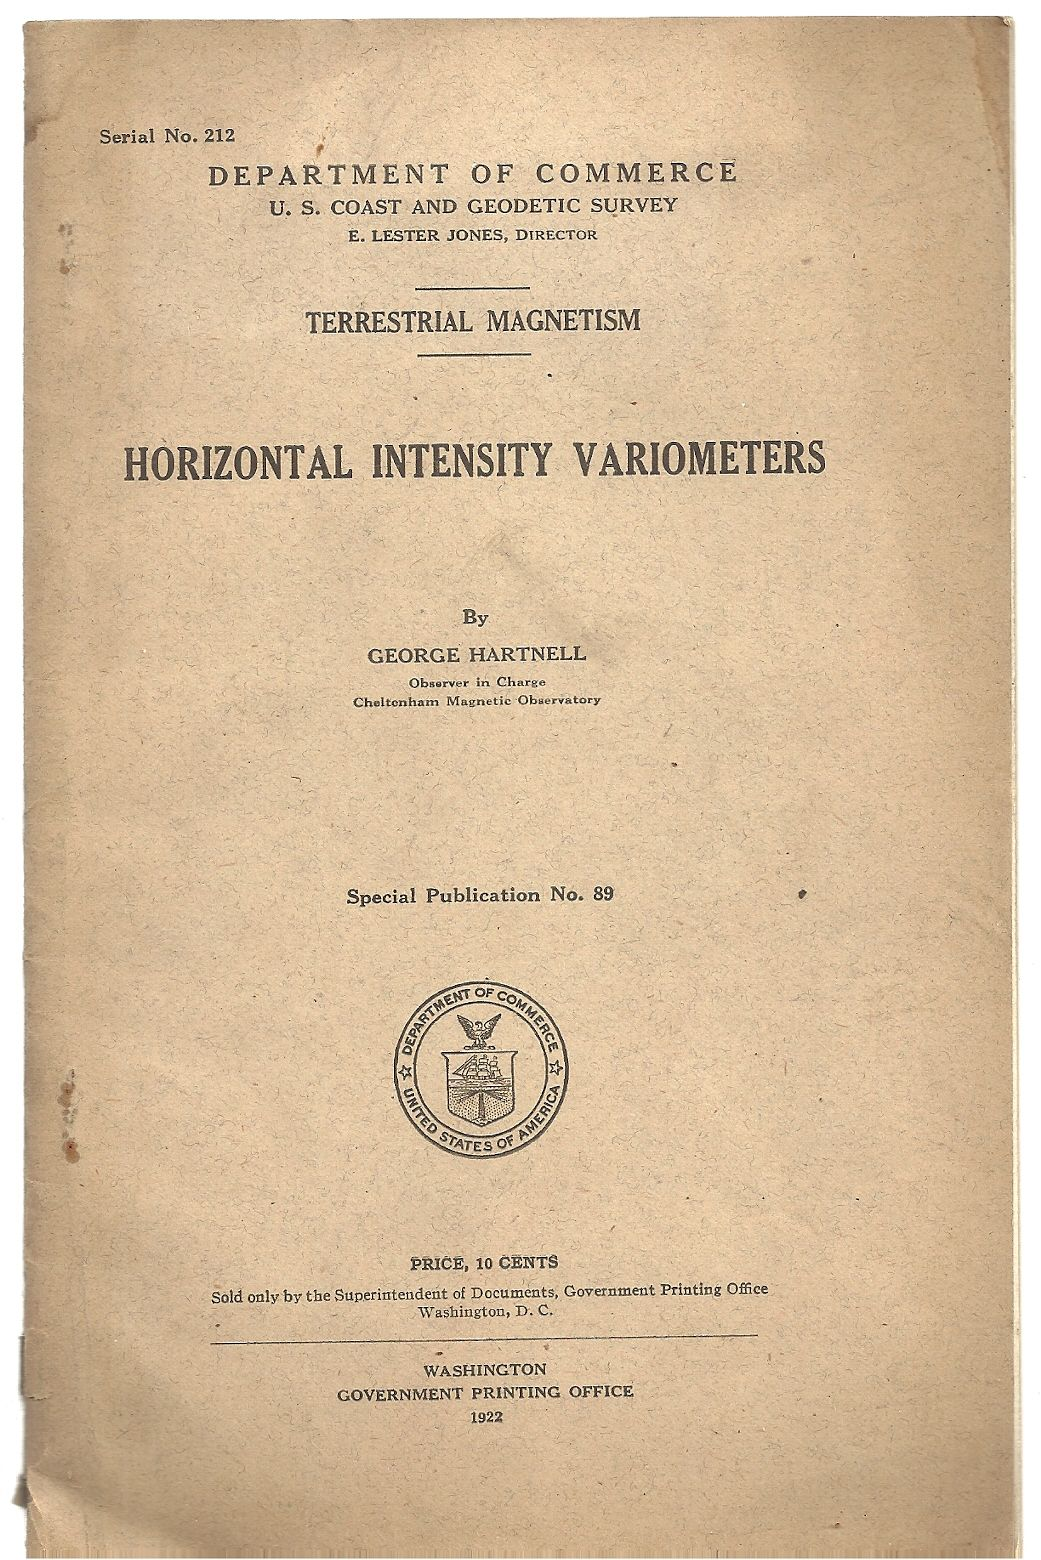 Horizontal Intensity Variometers, George Hartnell